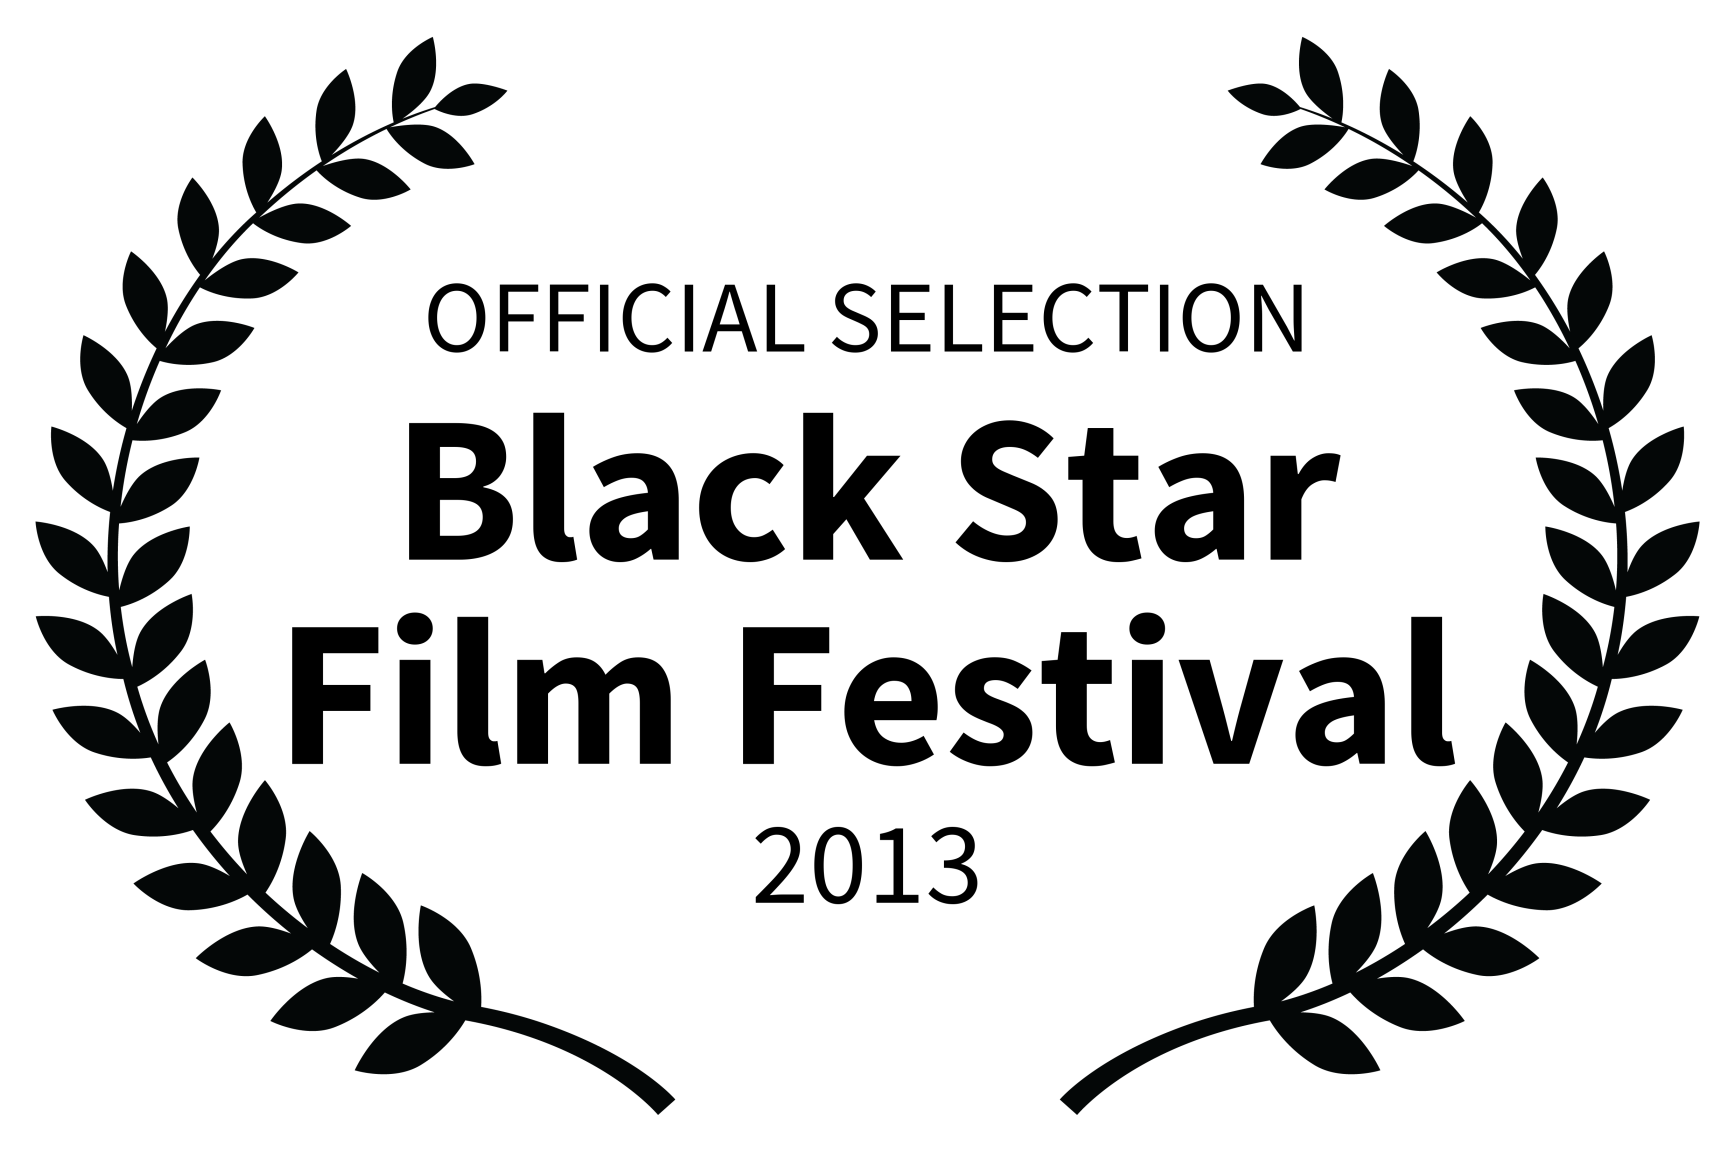 OFFICIAL SELECTION - Black Star Film Festival - 2013